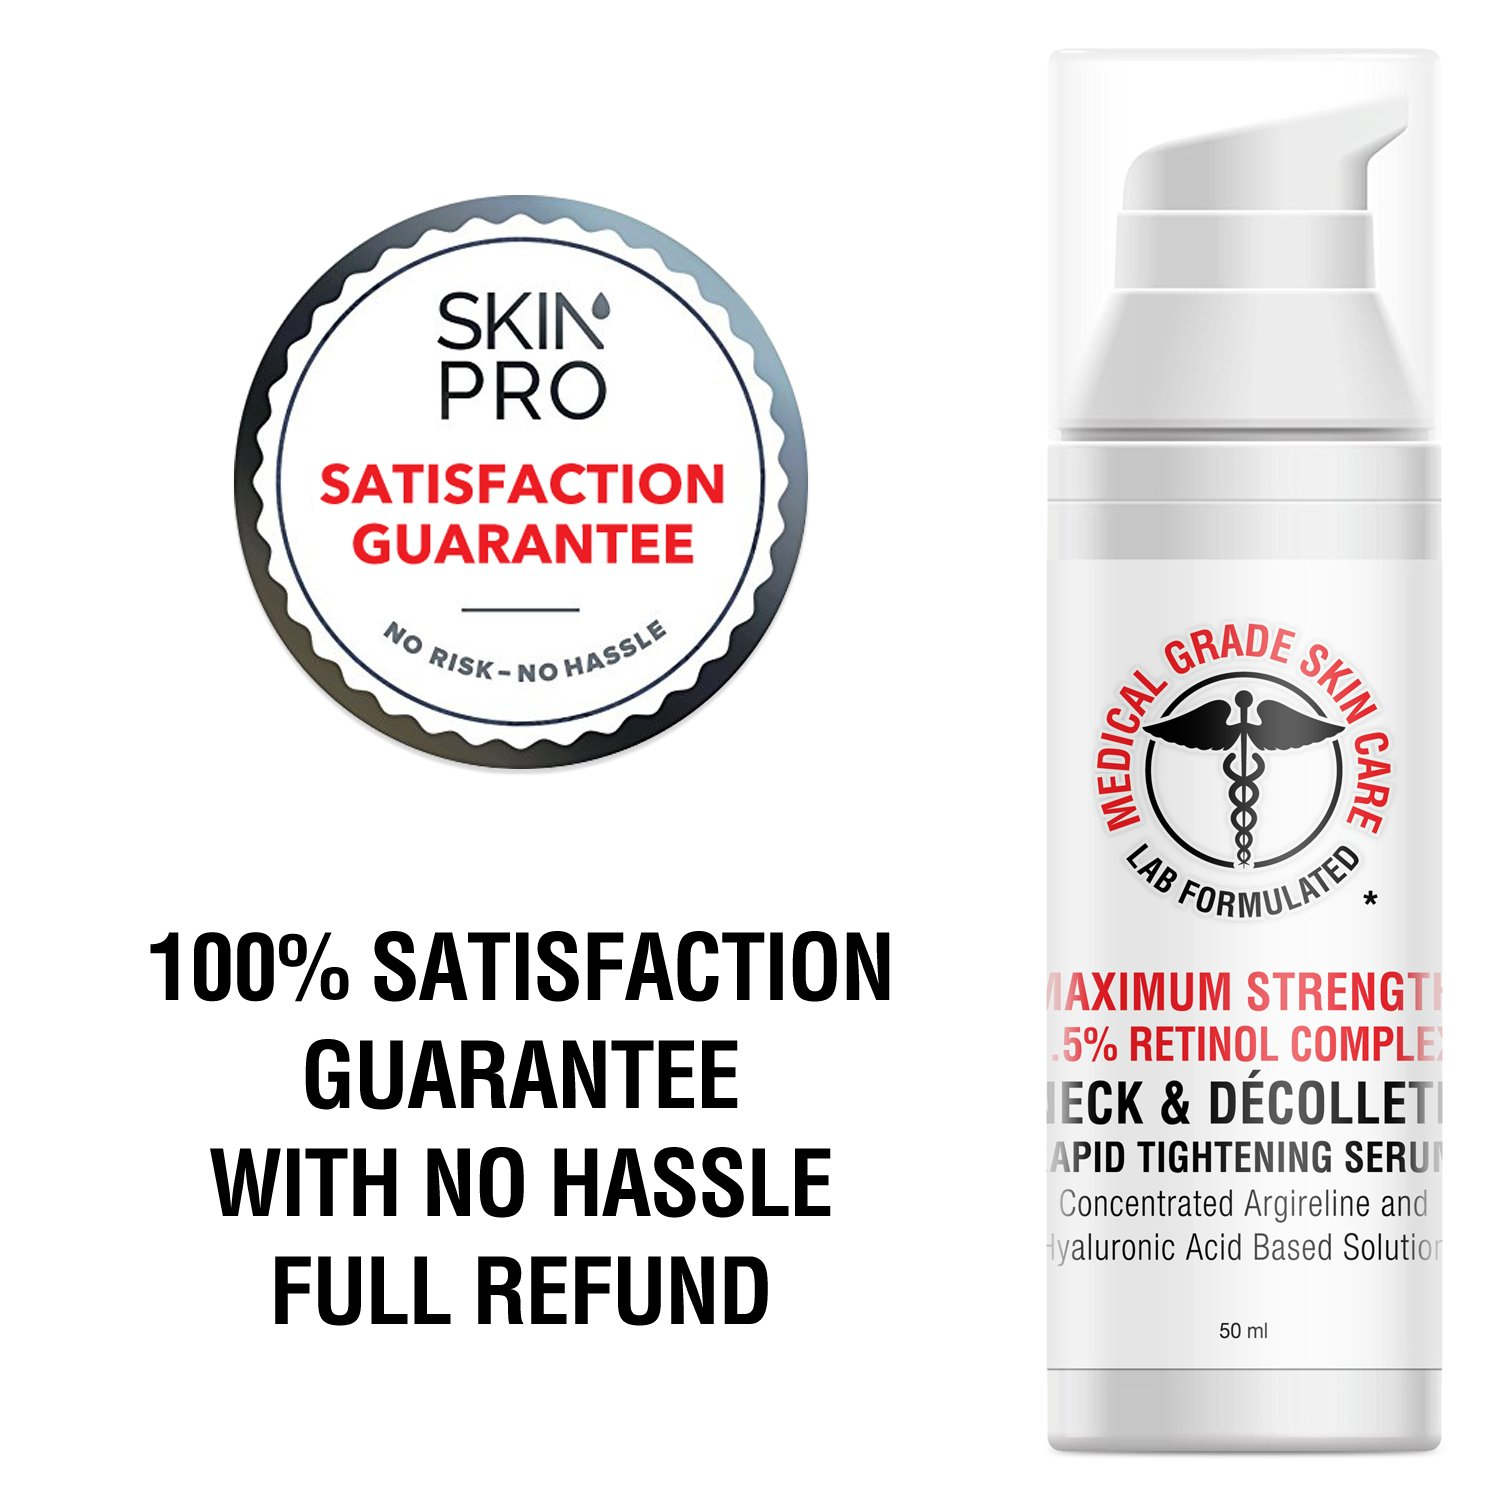 Neck & Décolleté Tightening Serum   Best Anti-Aging Firming Neck Cream Made With Maximum Strength 2.5% Retinol Complex   Concentrated With Argireline and Hyaluronic Acid by SkinPro (Image #7)